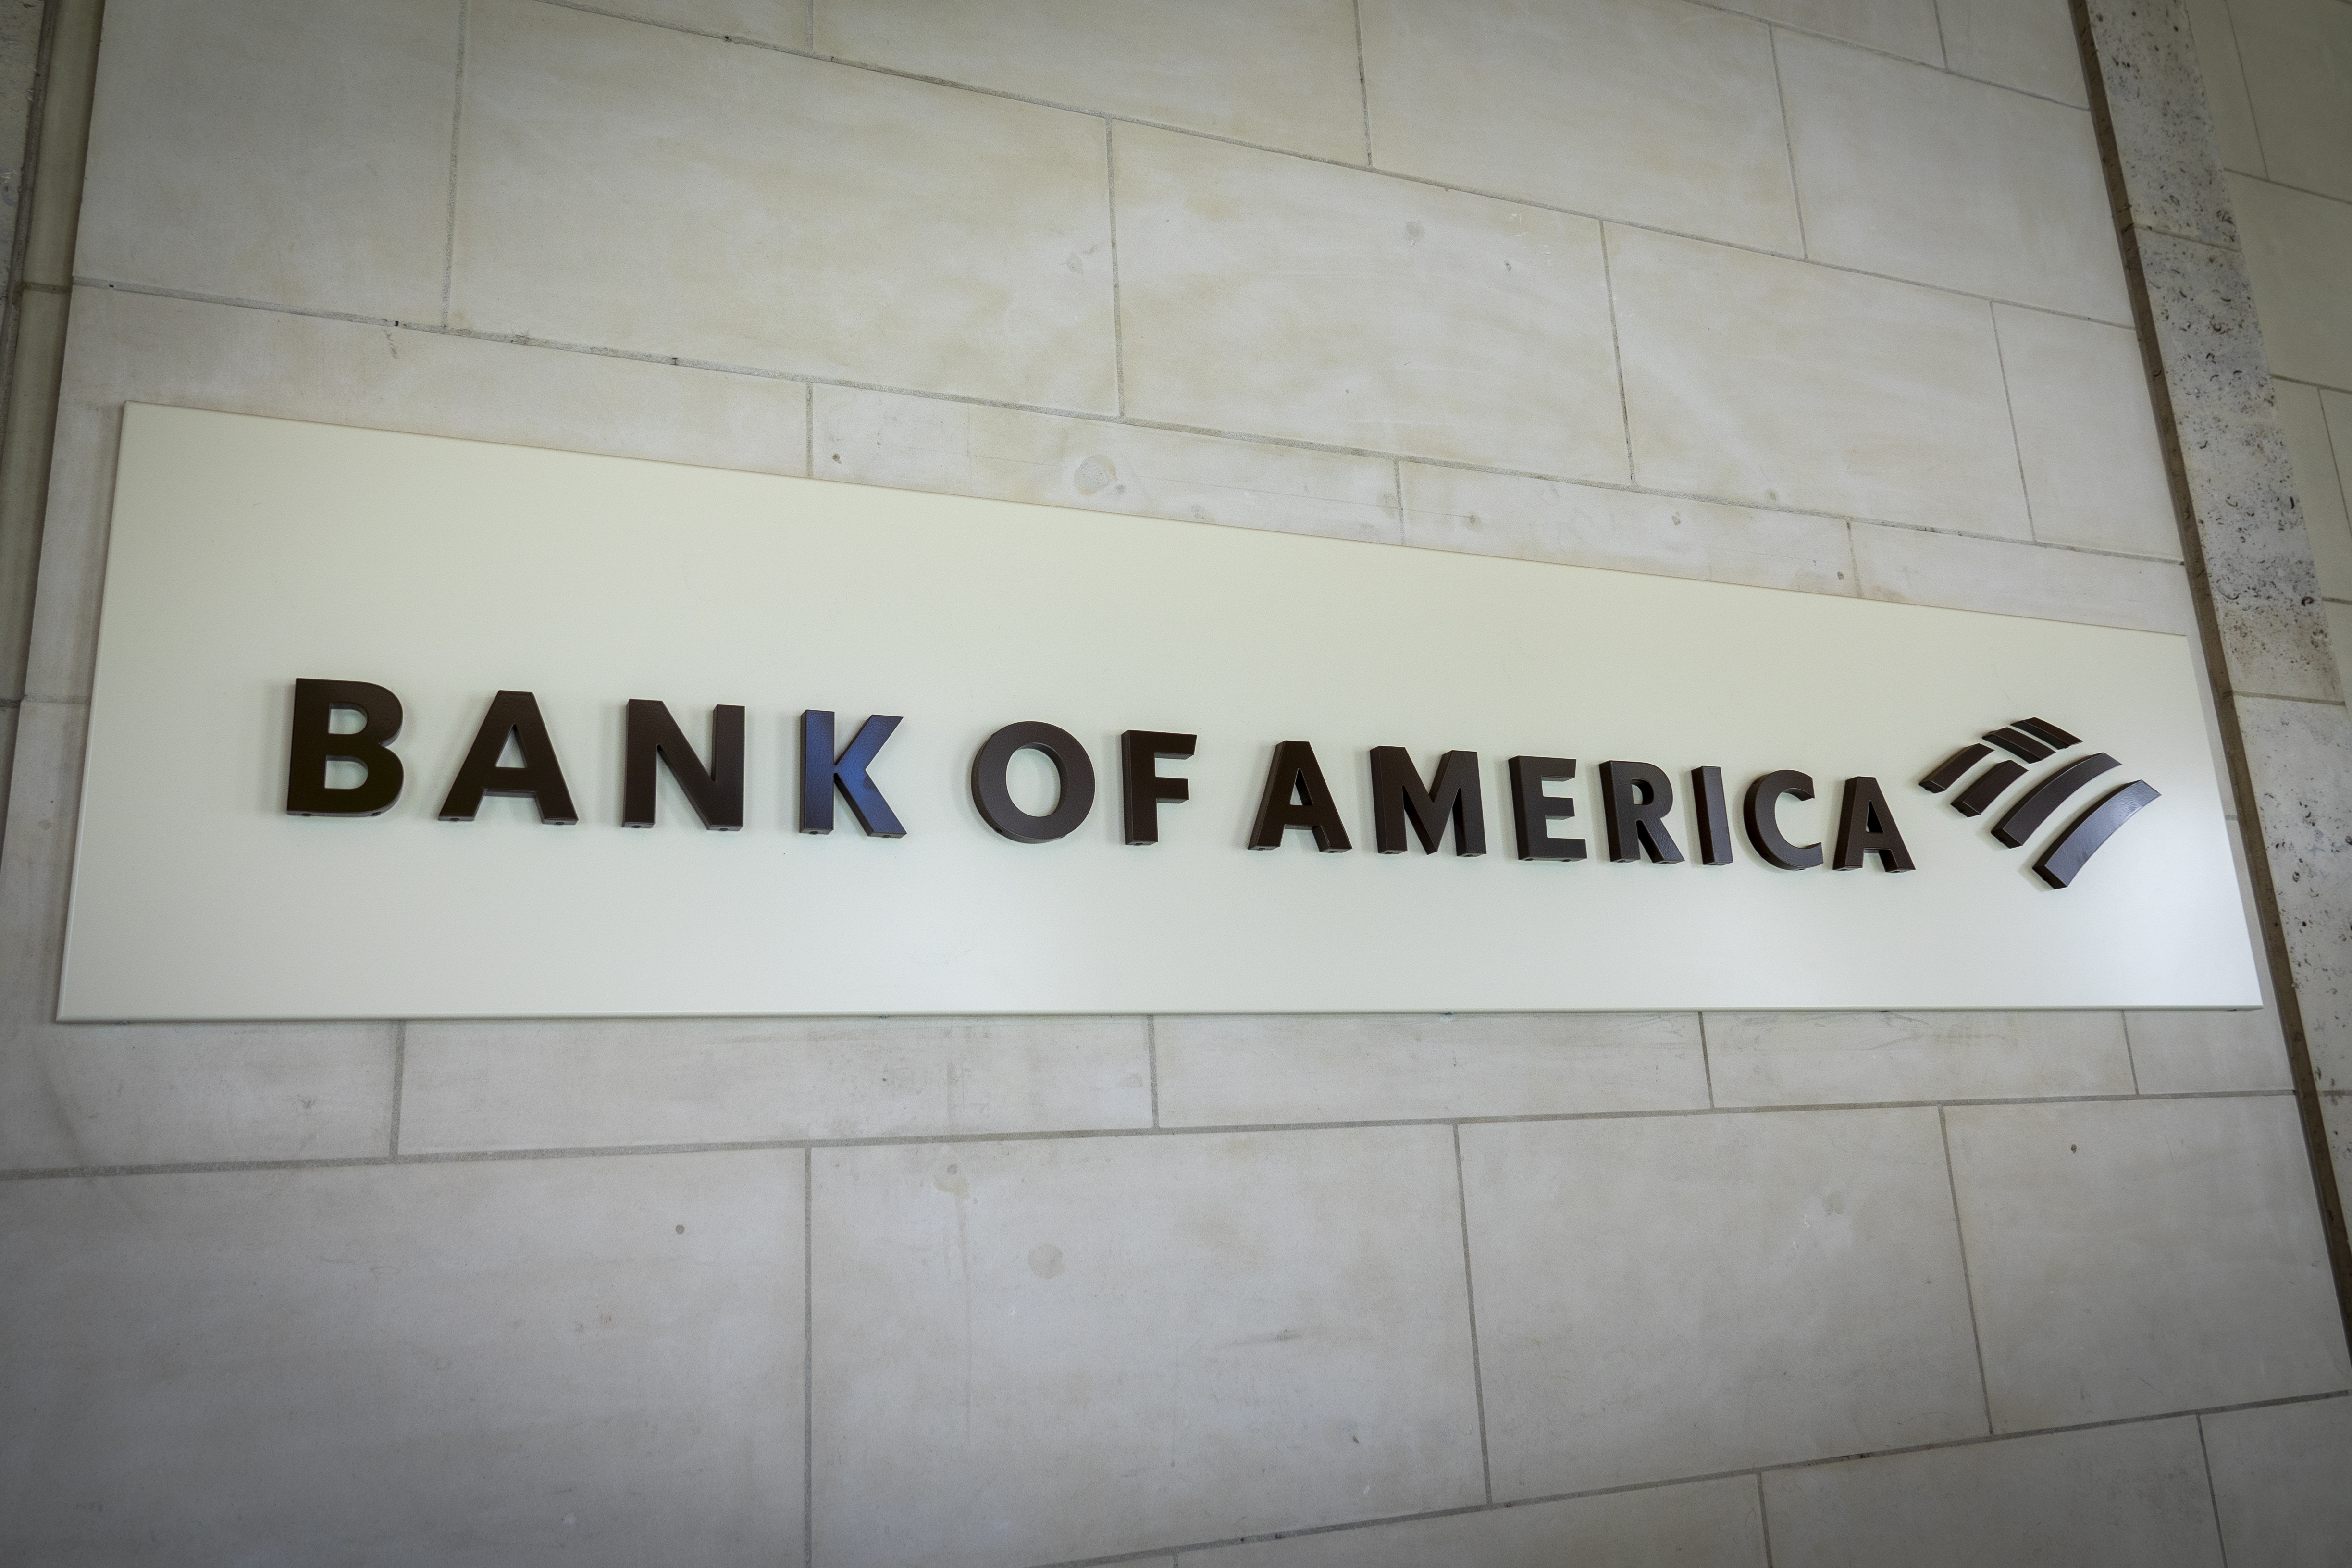 compte-bancaire-bank-of-america-usa-llc